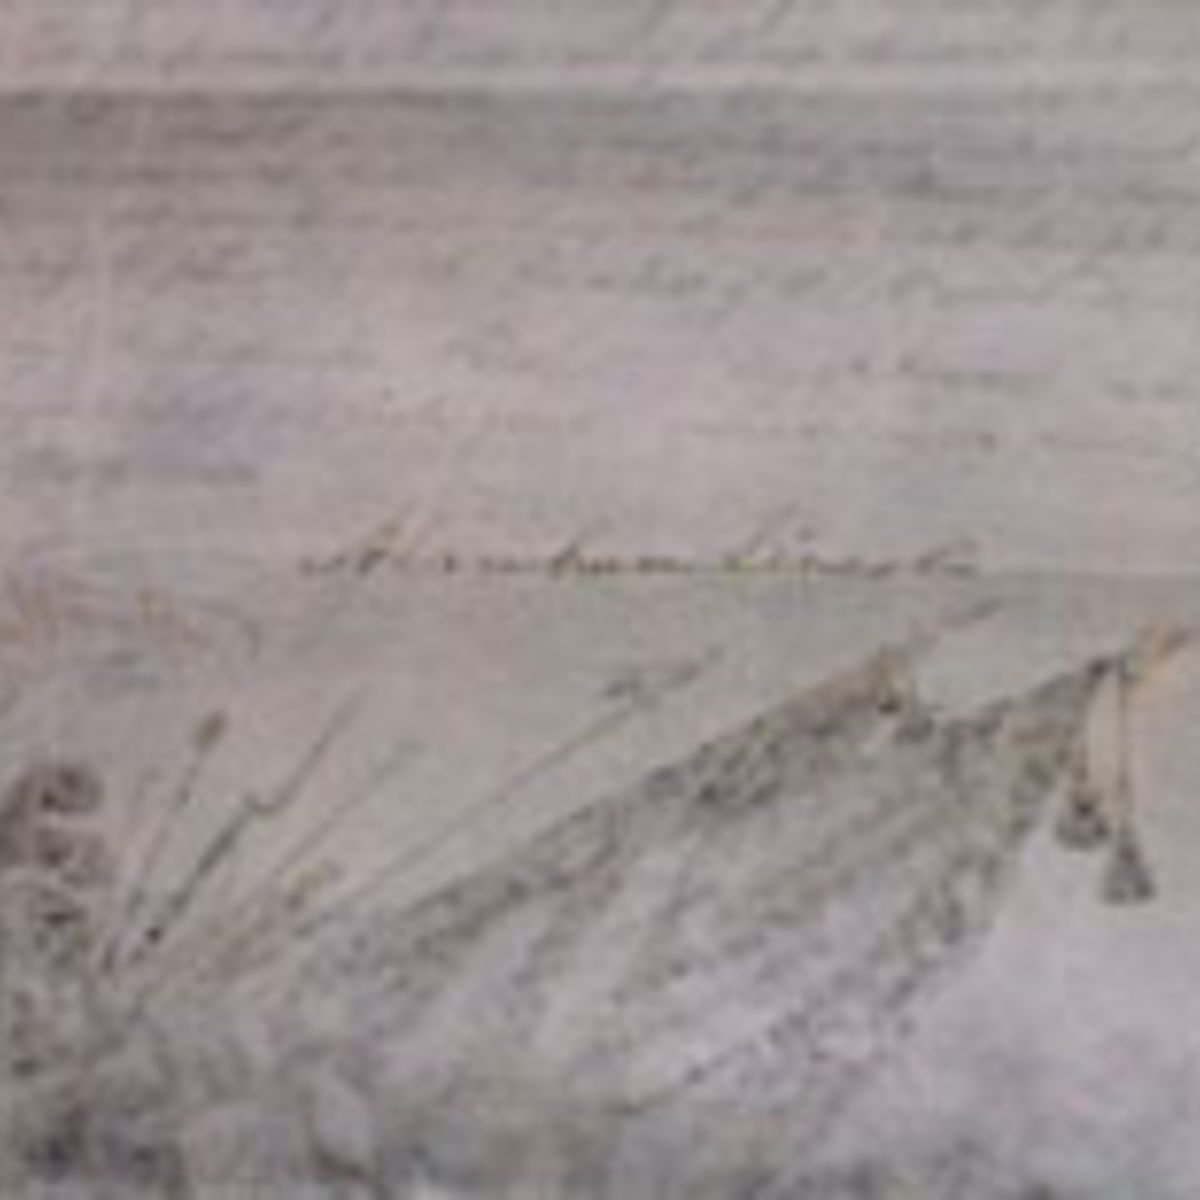 ORIGINAL DOCUMENT SIGNED BY ABRAHAM LINCOLN.